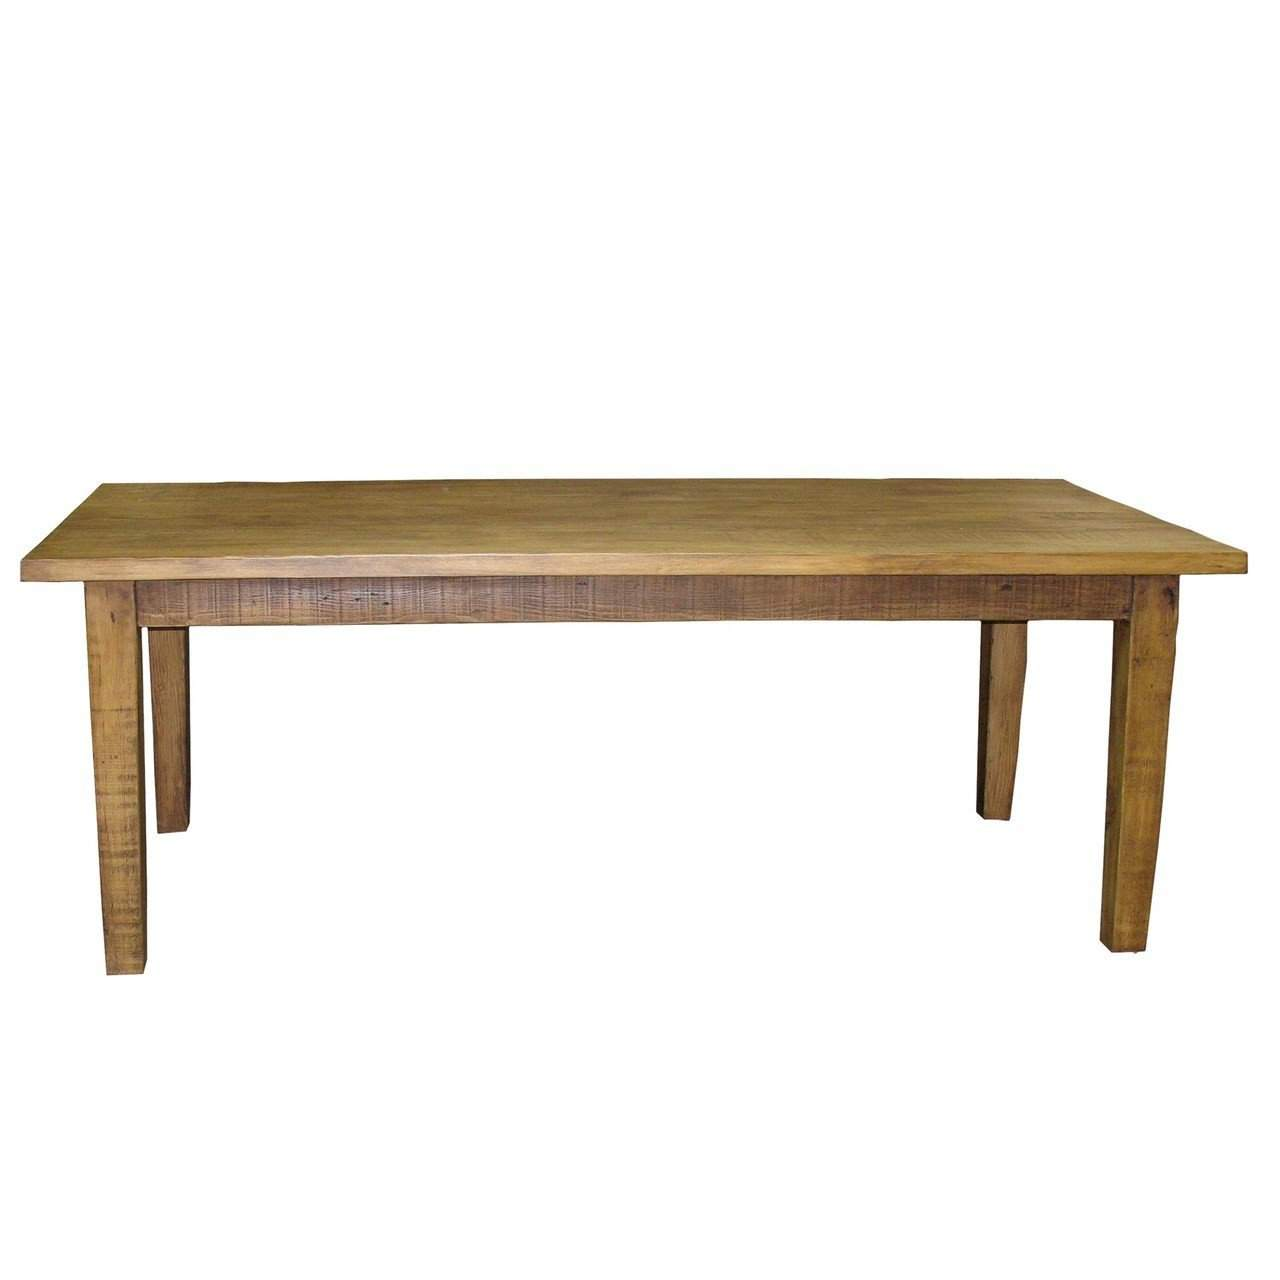 CFC Furniture Reclaimed Lumber Farm Dining Table